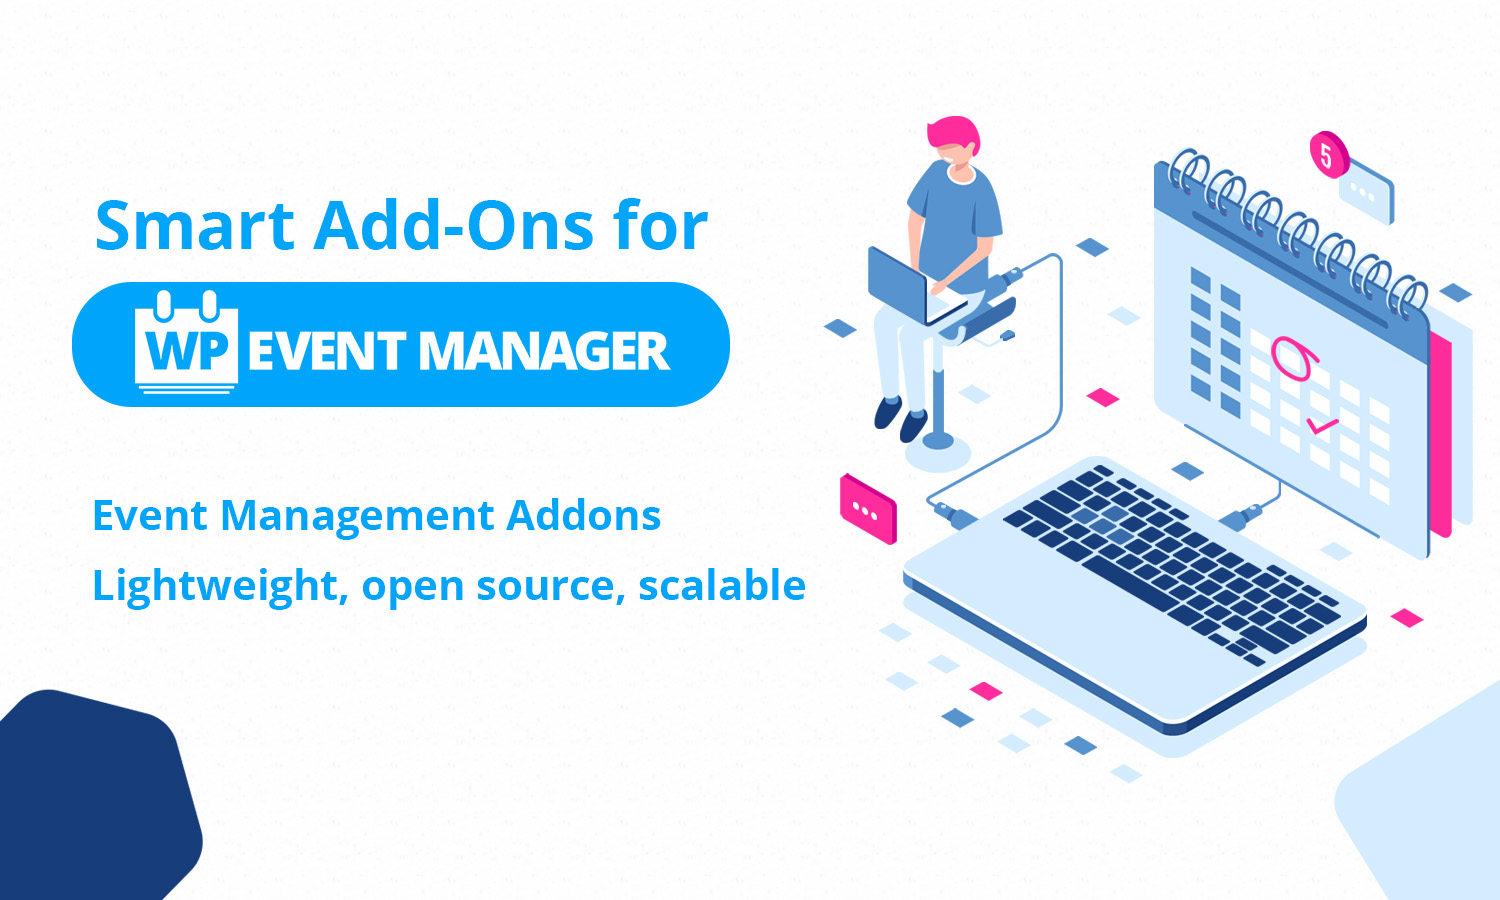 Smart Add-Ons for WP Event Manager